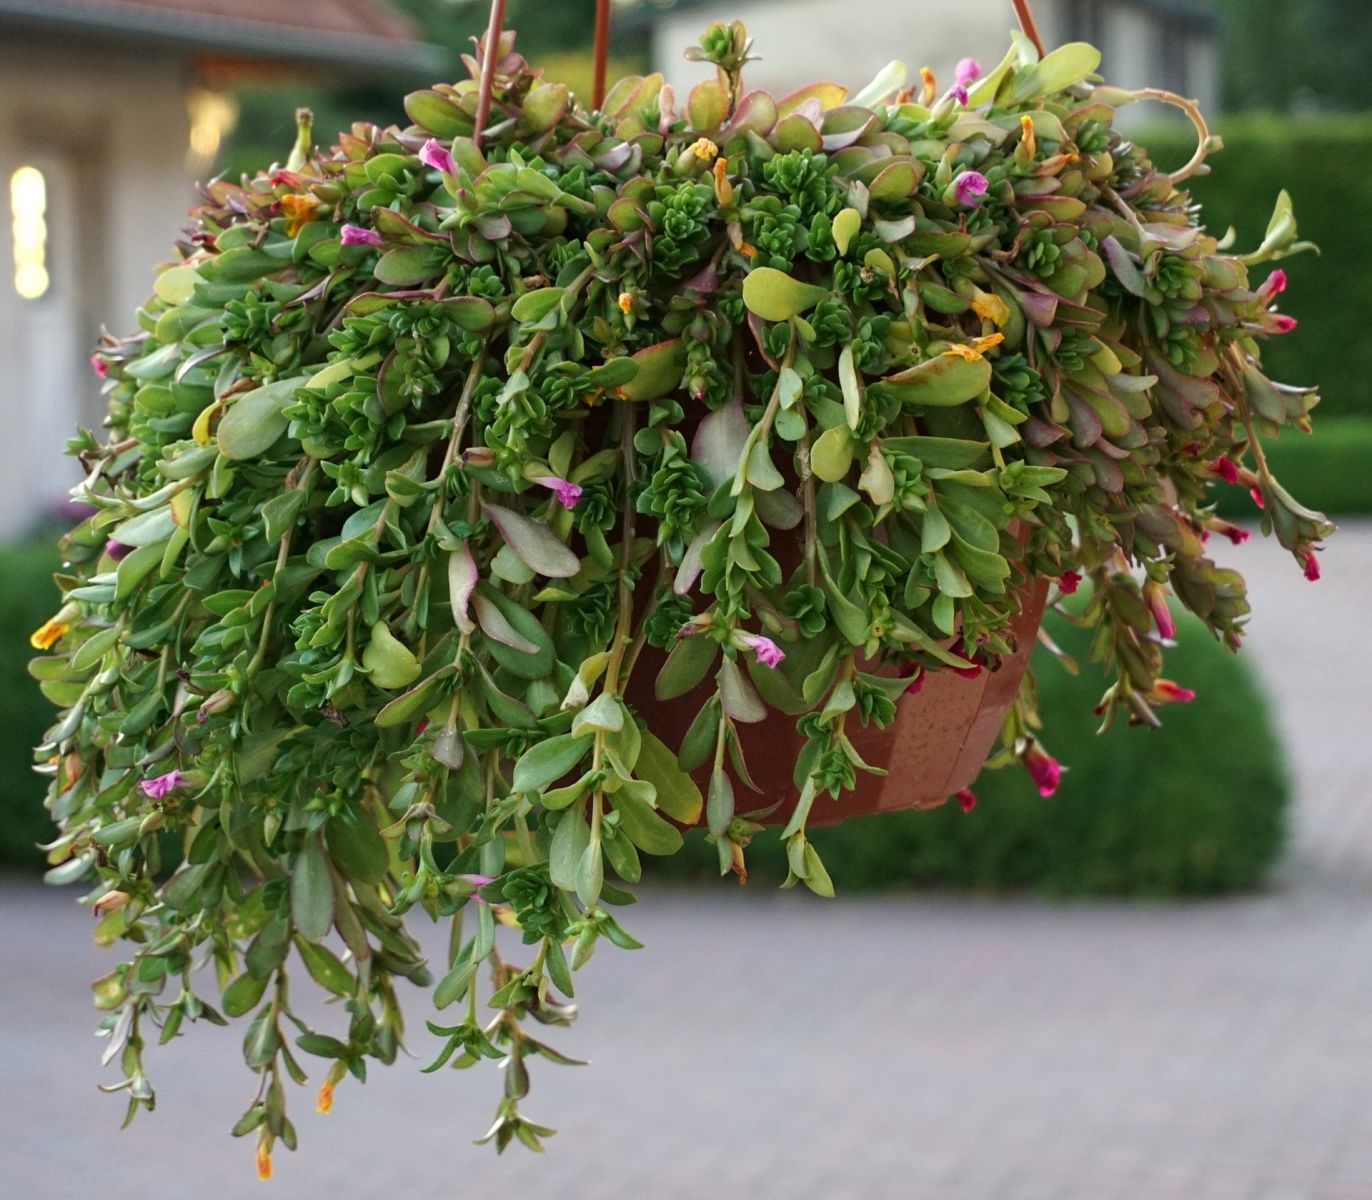 bushy trailing plant with flowers